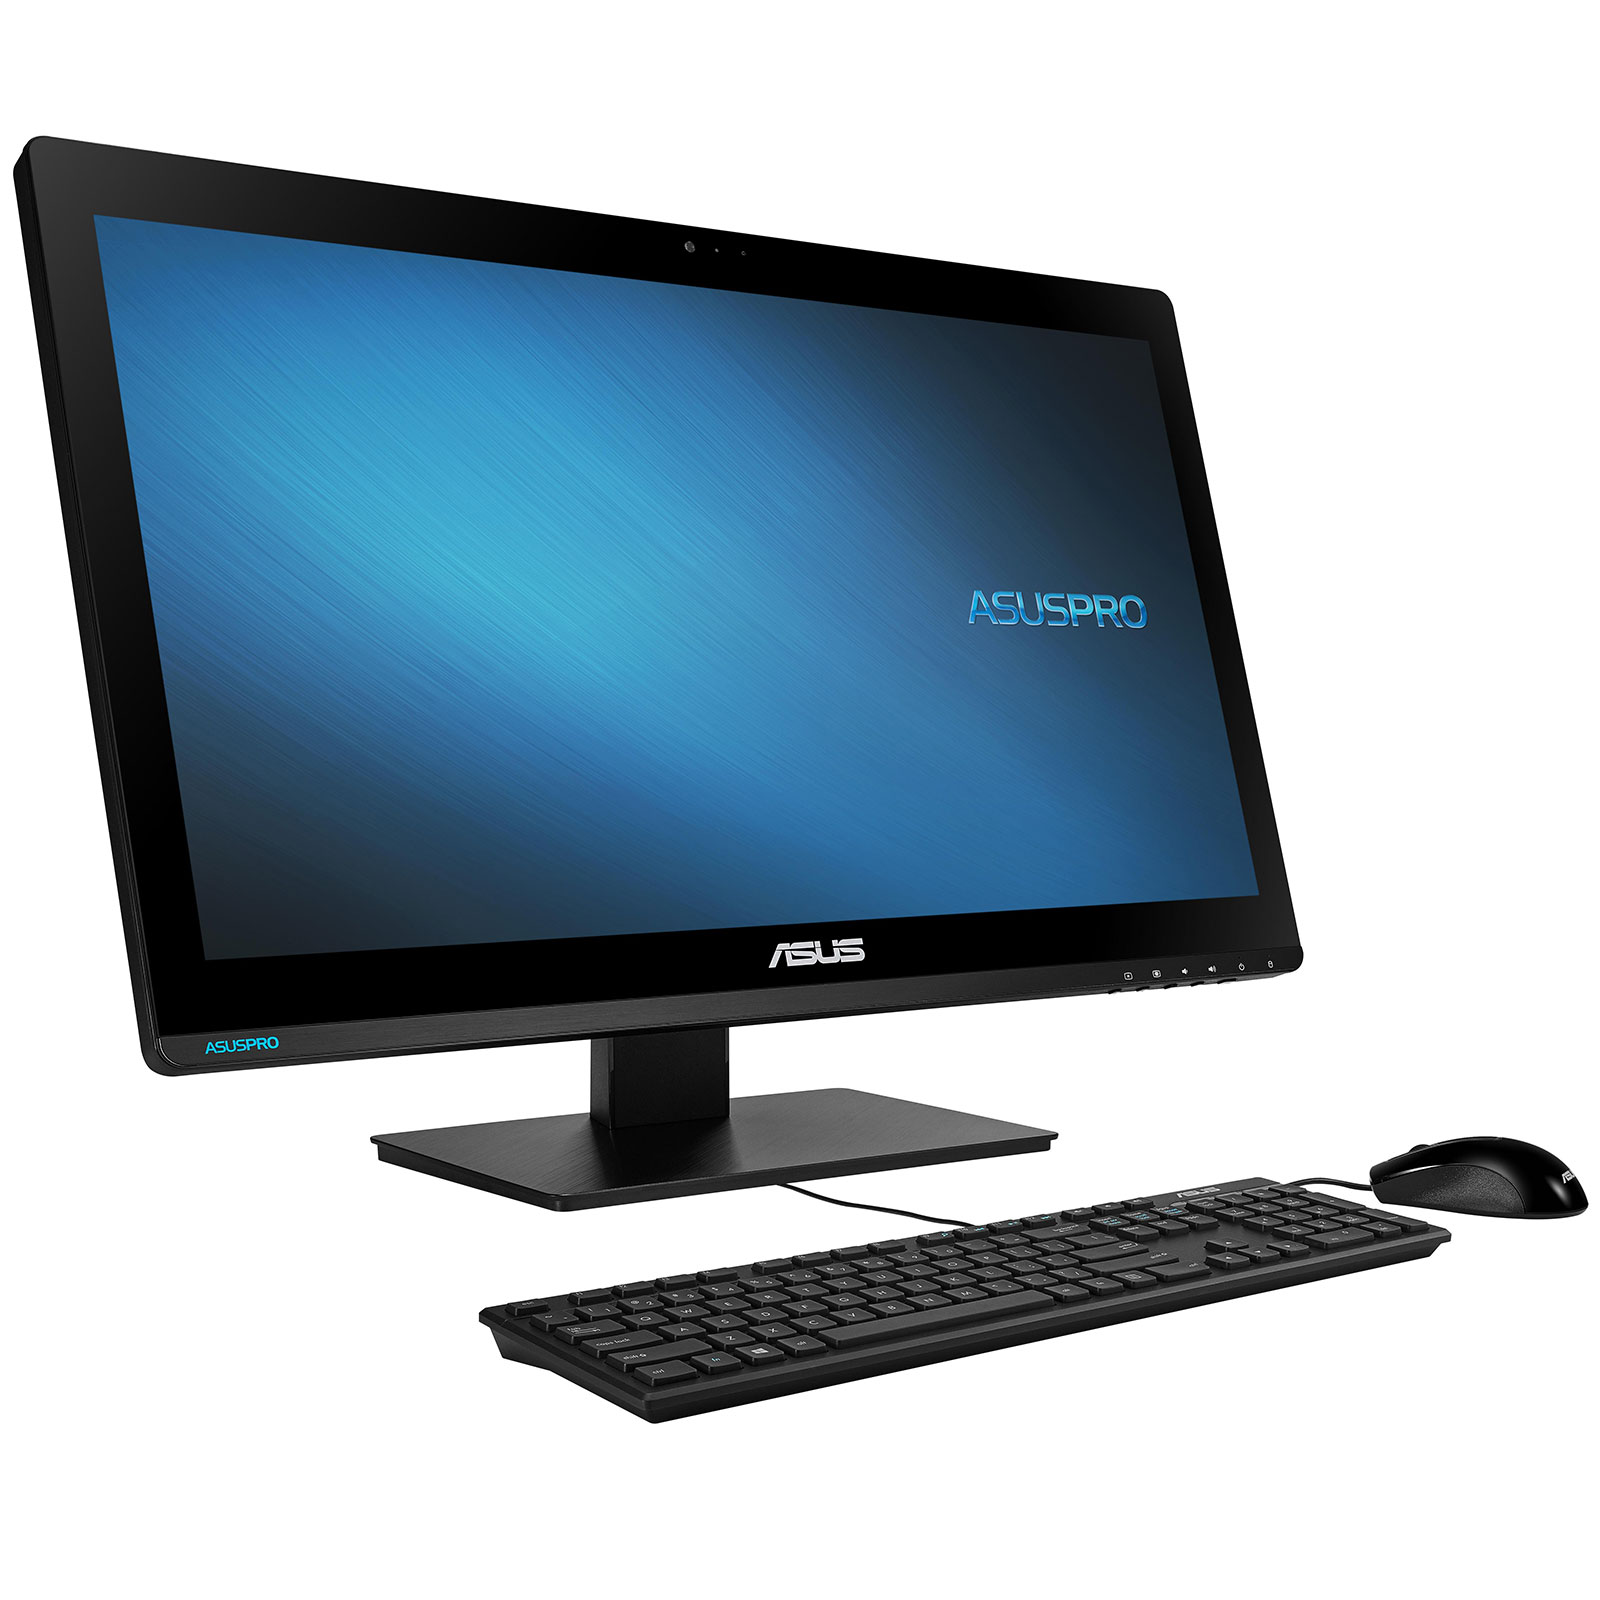 asus all in one pc a6421ukh bc240x intel core i5 6400 4 go 1 to led 21 5 graveur dvd wi fi ac bluetooth webcam windows 7 professionnel 64 bits windows 10